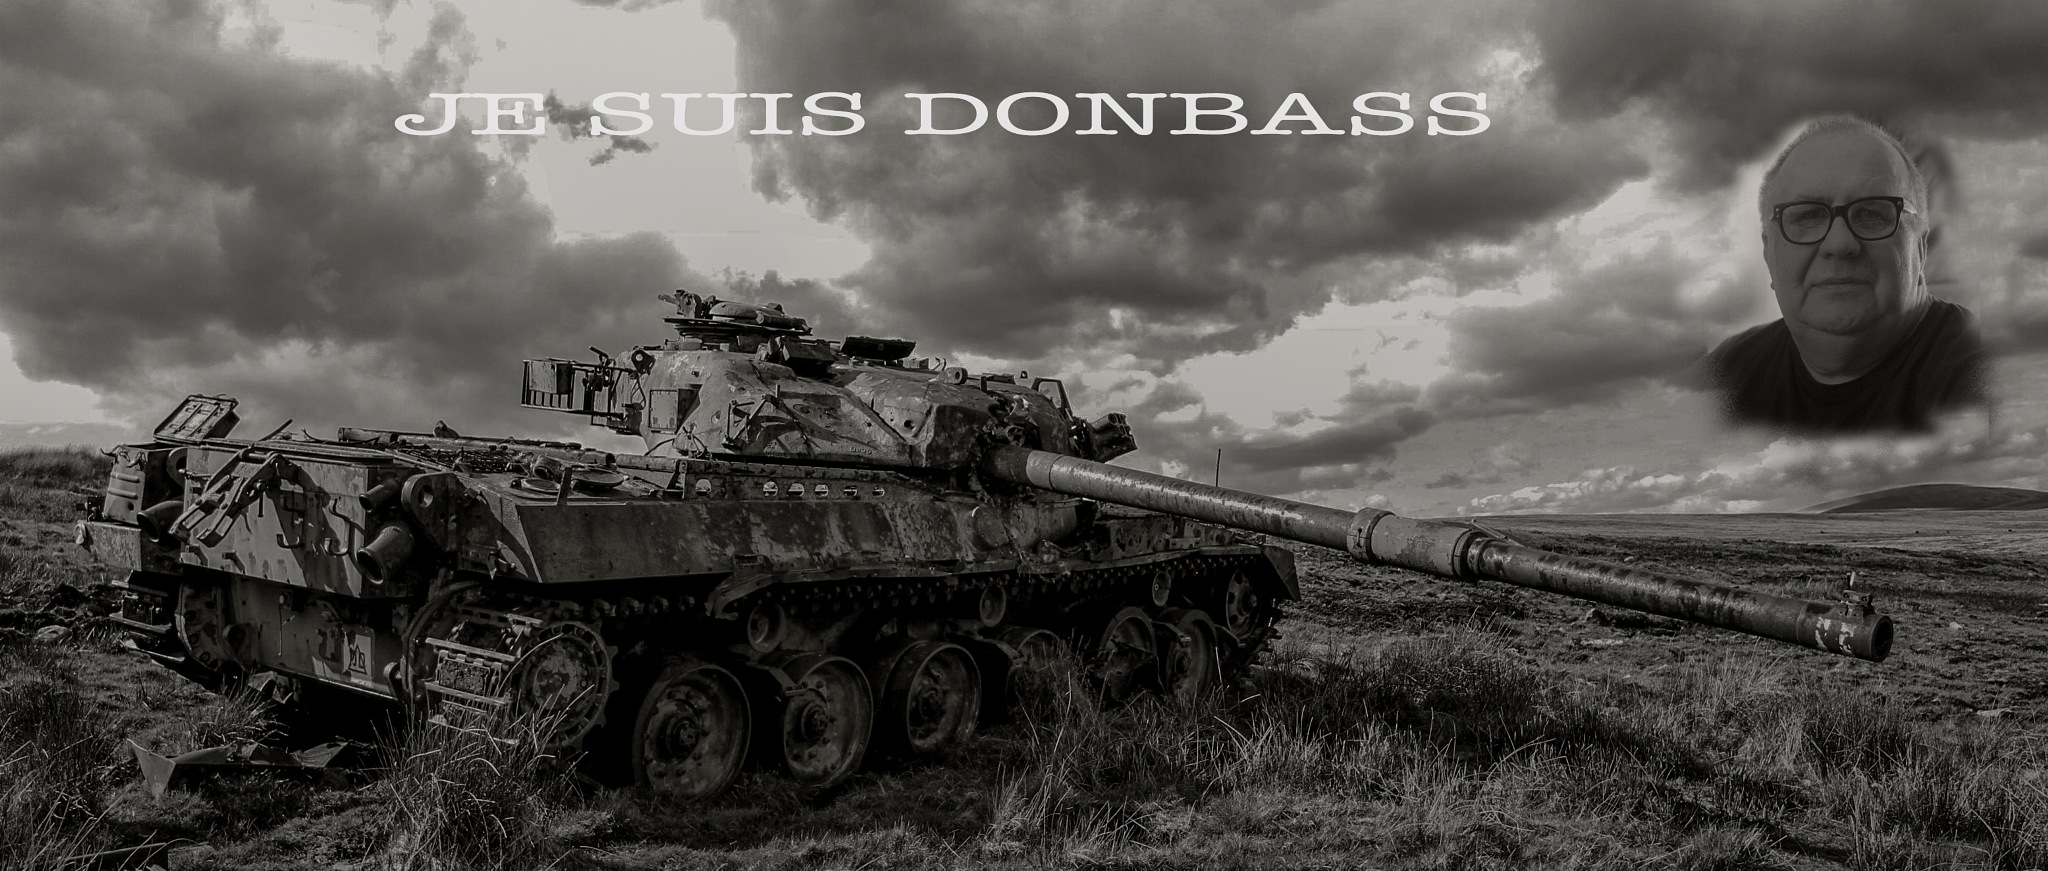 Donbass by Andreas Rettschlag